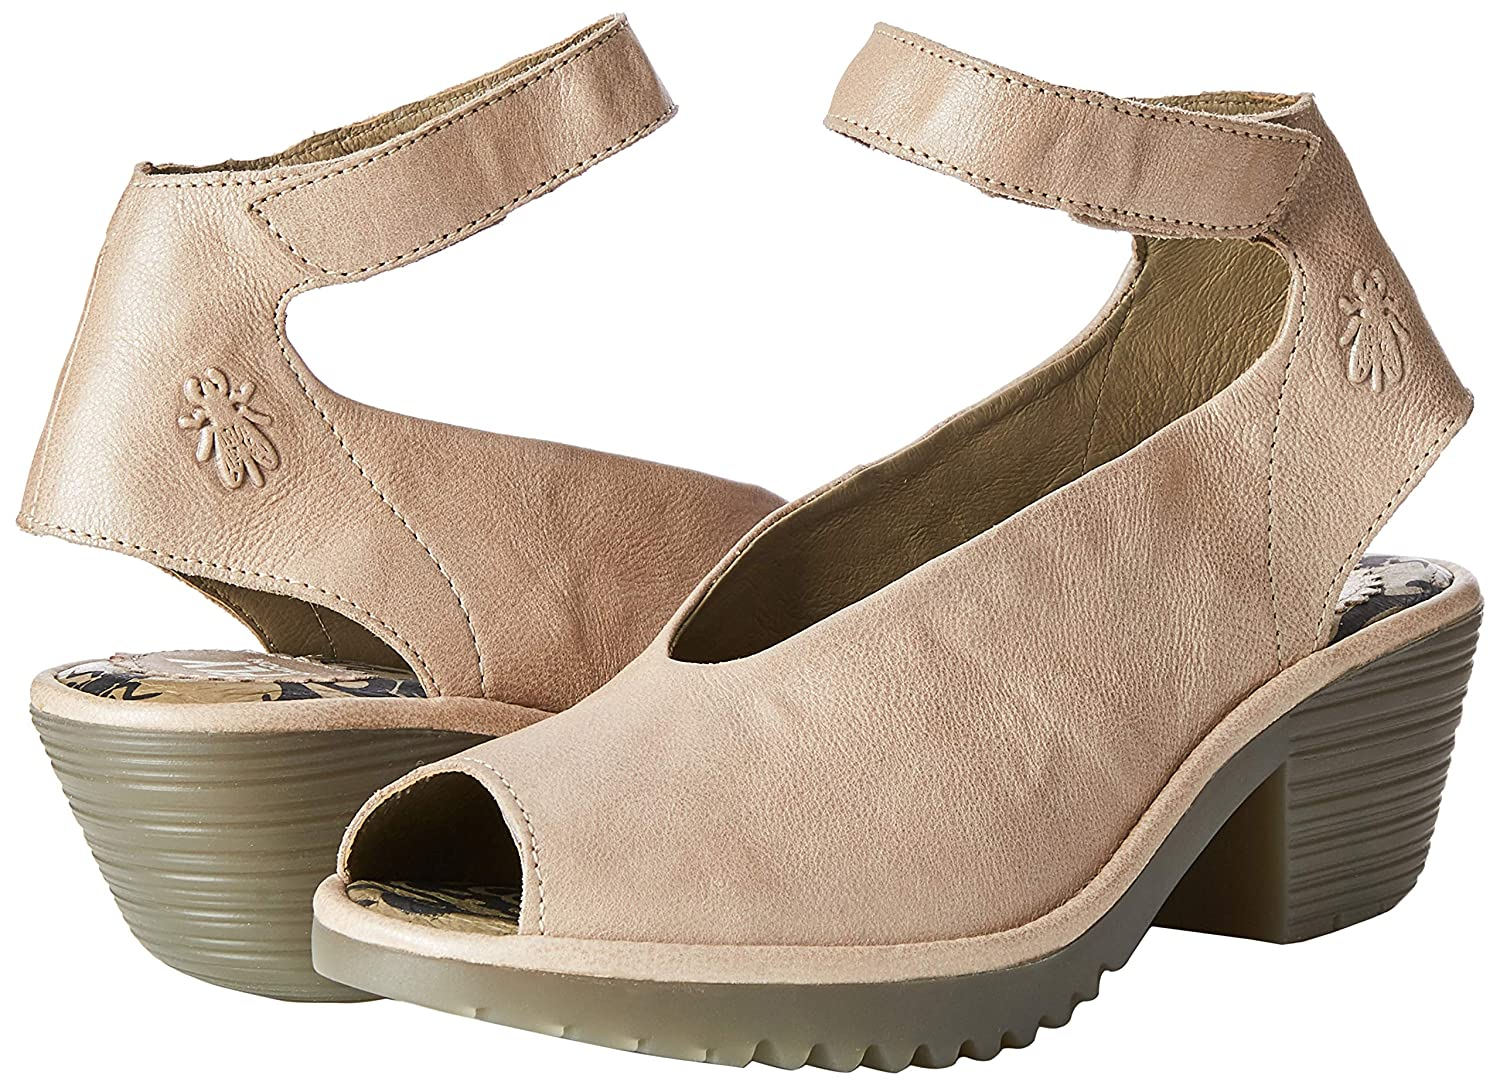 Fly Bride London Wolm019flyEscarpins Cheville Femme nw8P0kXO